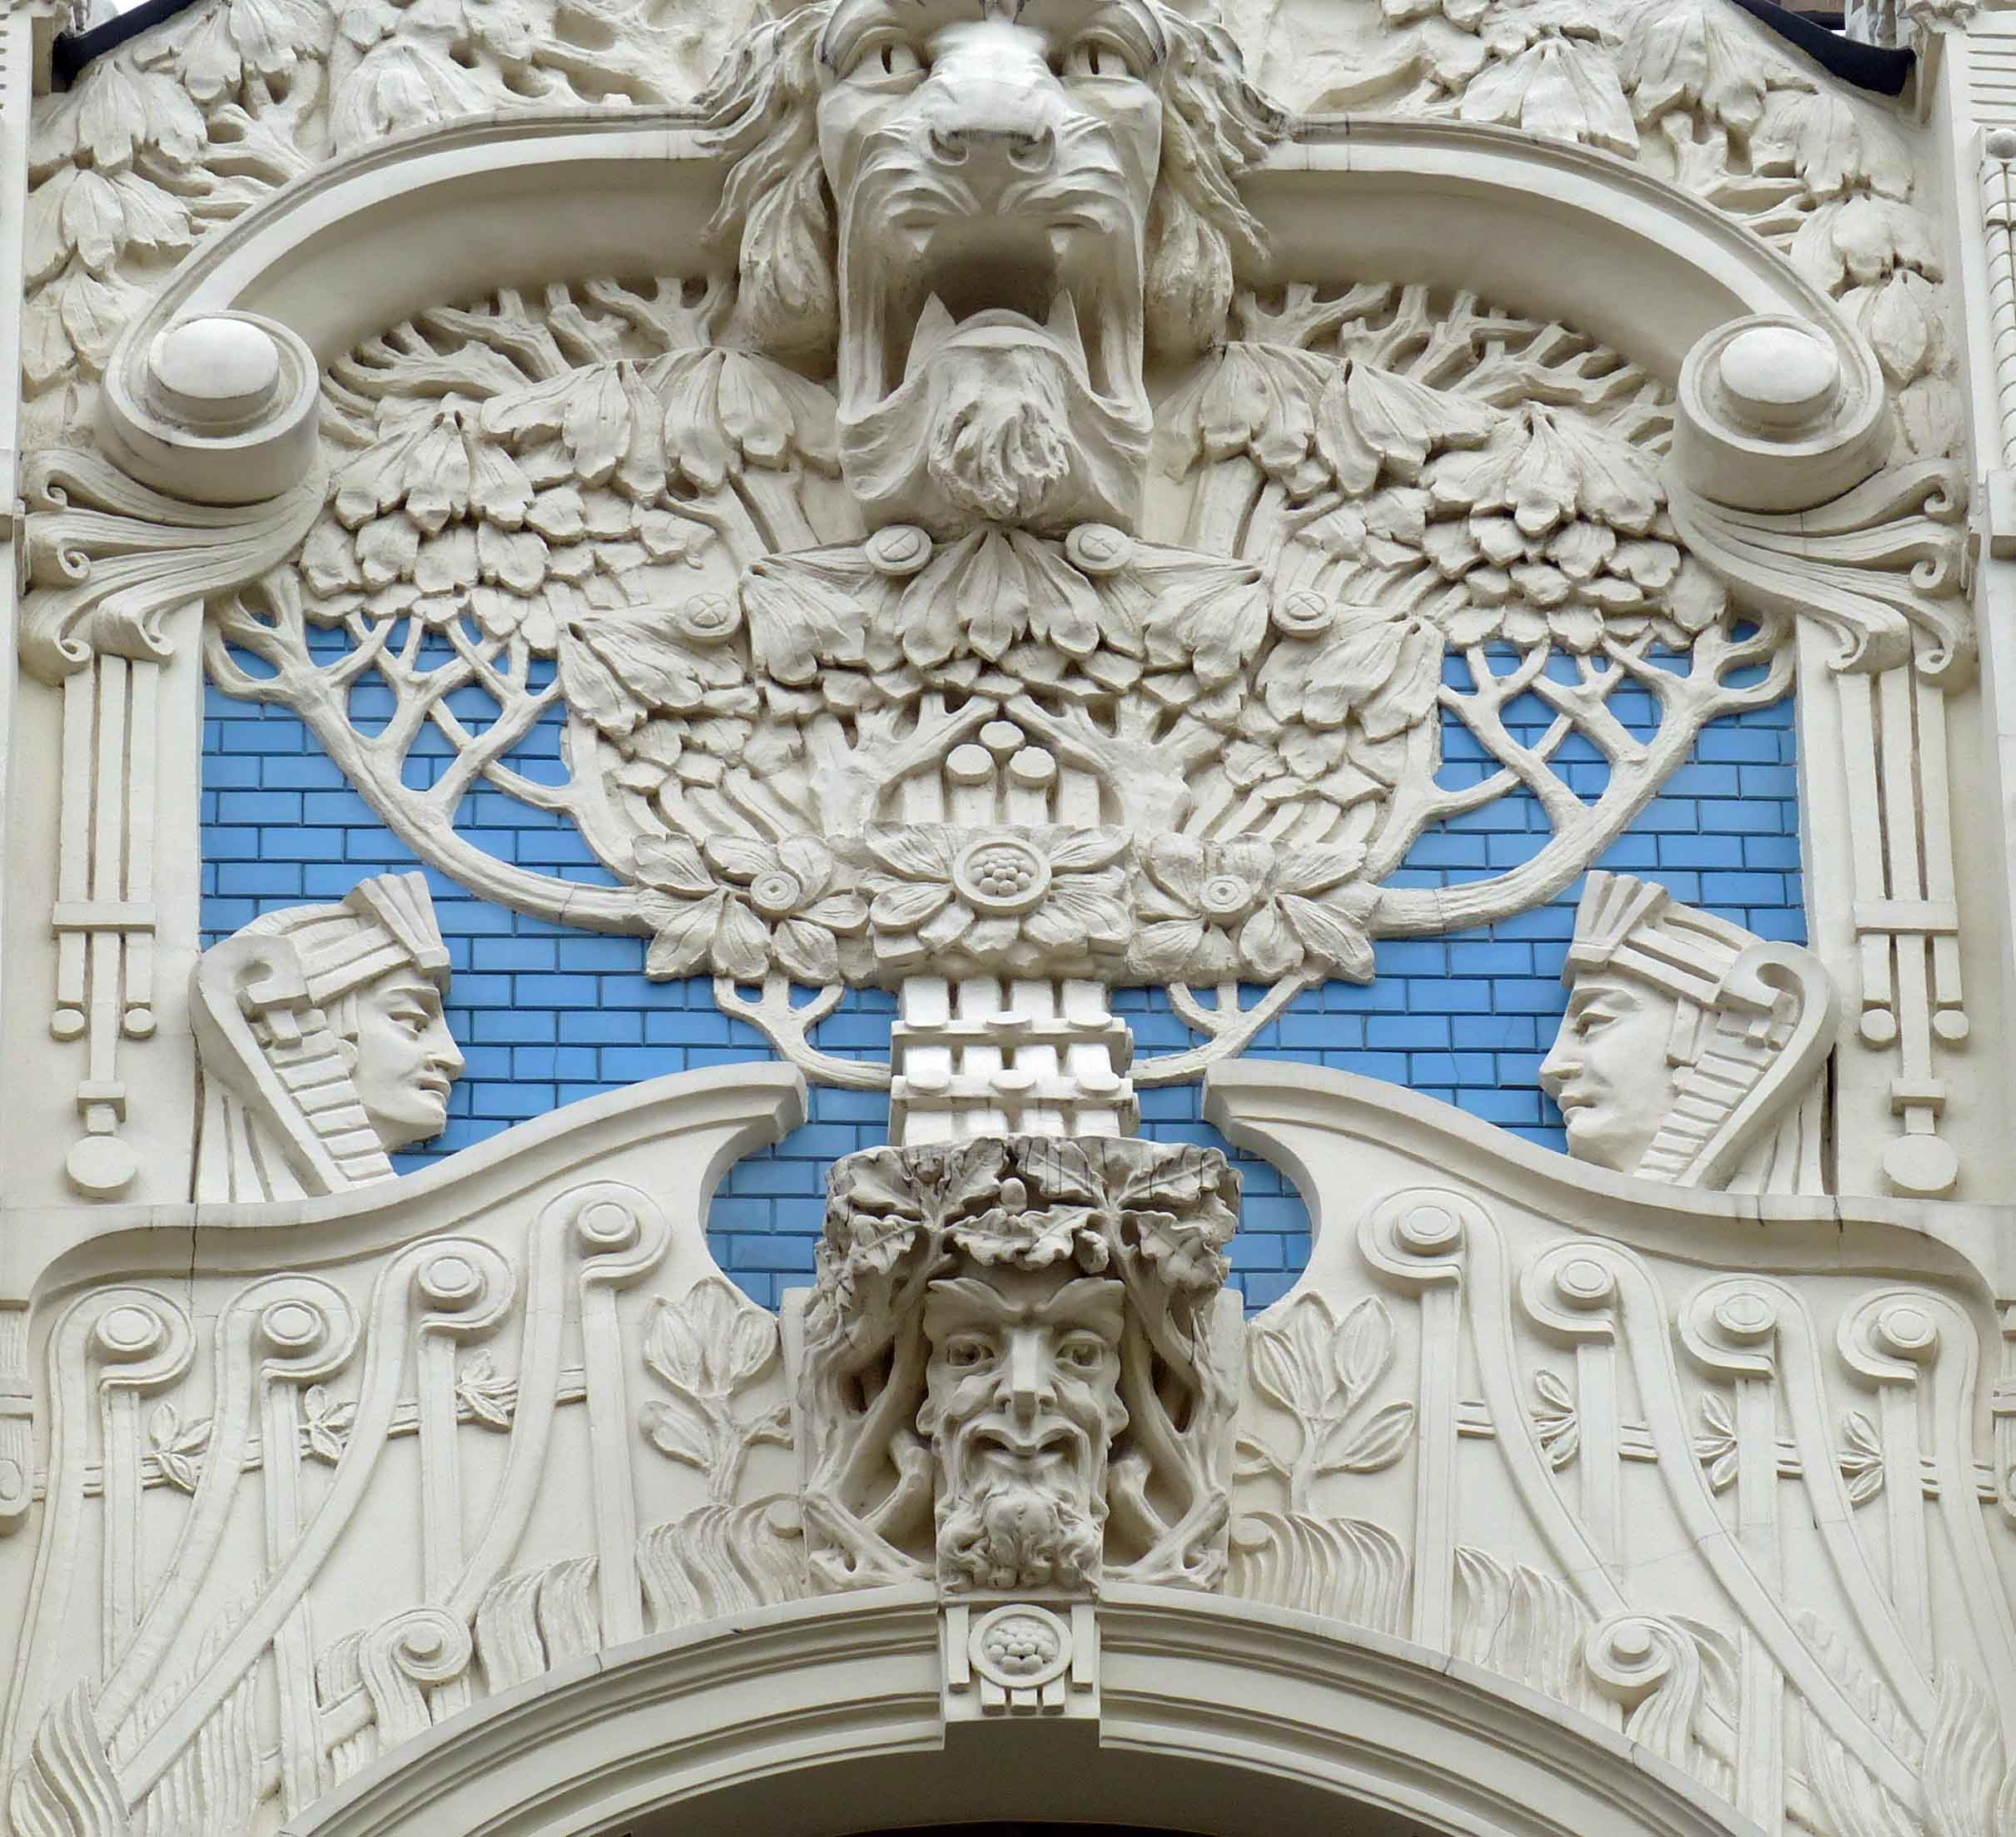 Ornate blue building with details carved in white stone